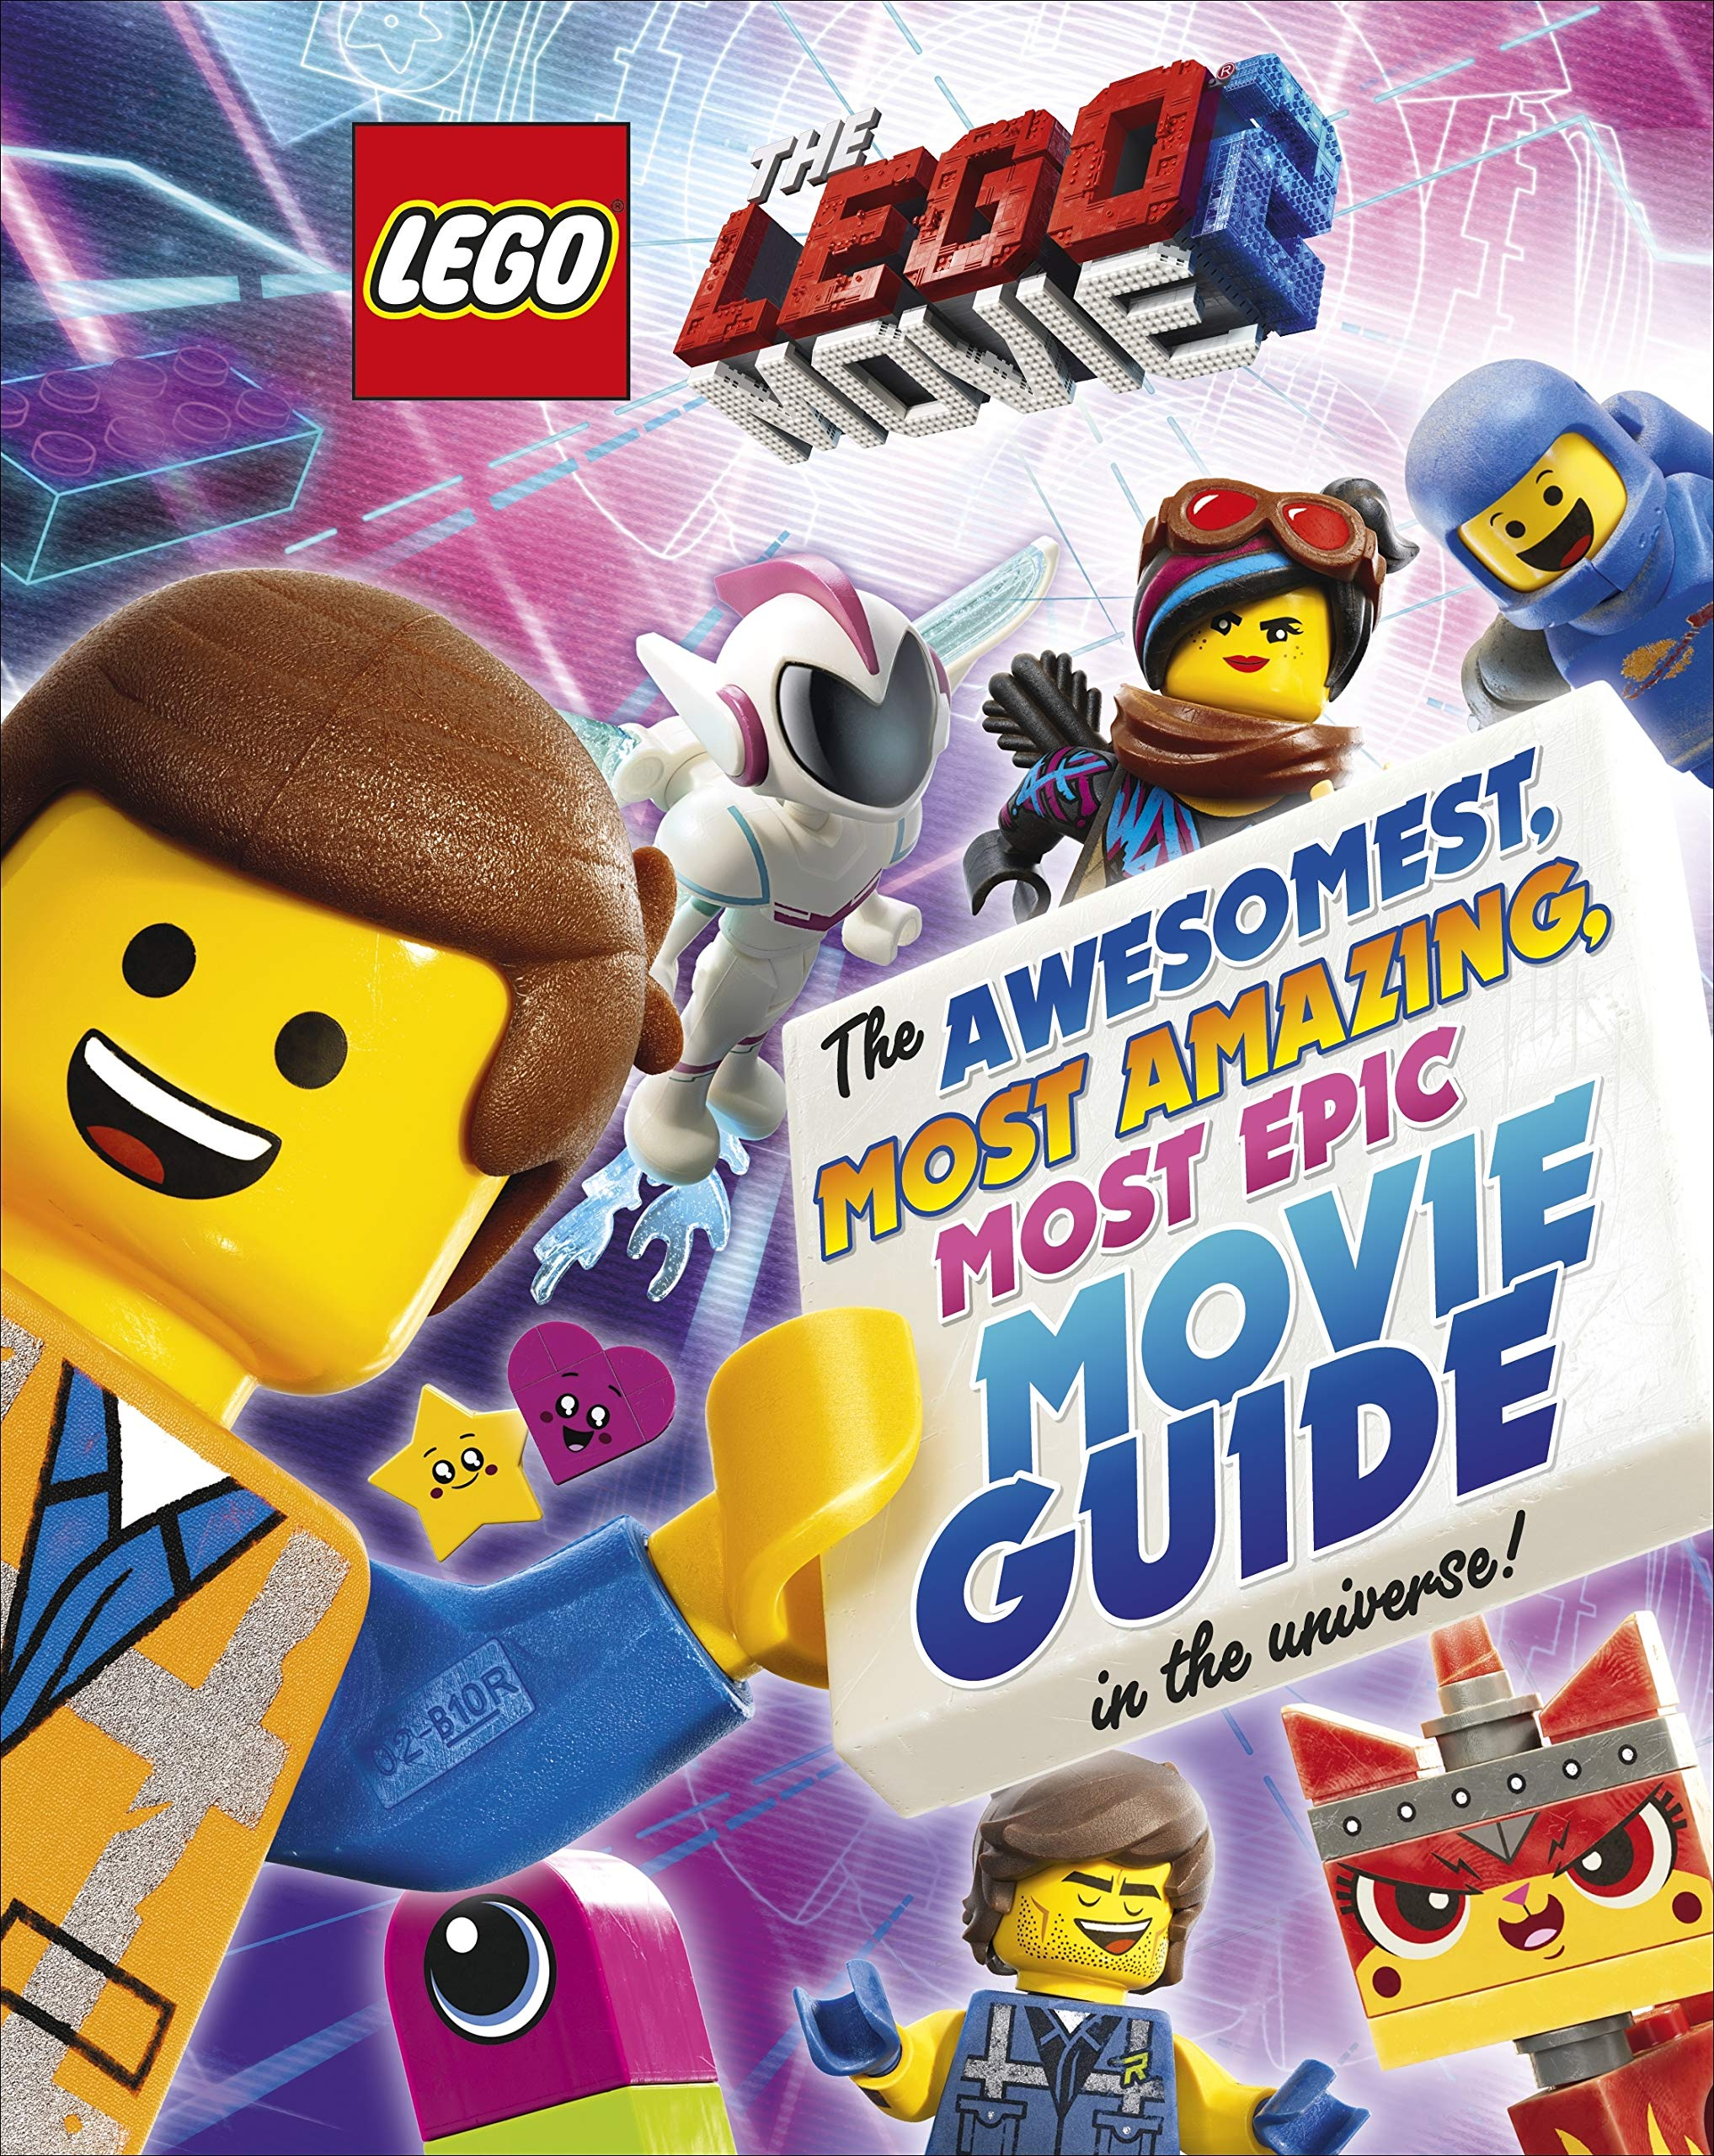 The LEGO® MOVIE 2TM: The Awesomest, Most Amazing, Most Epic Movie